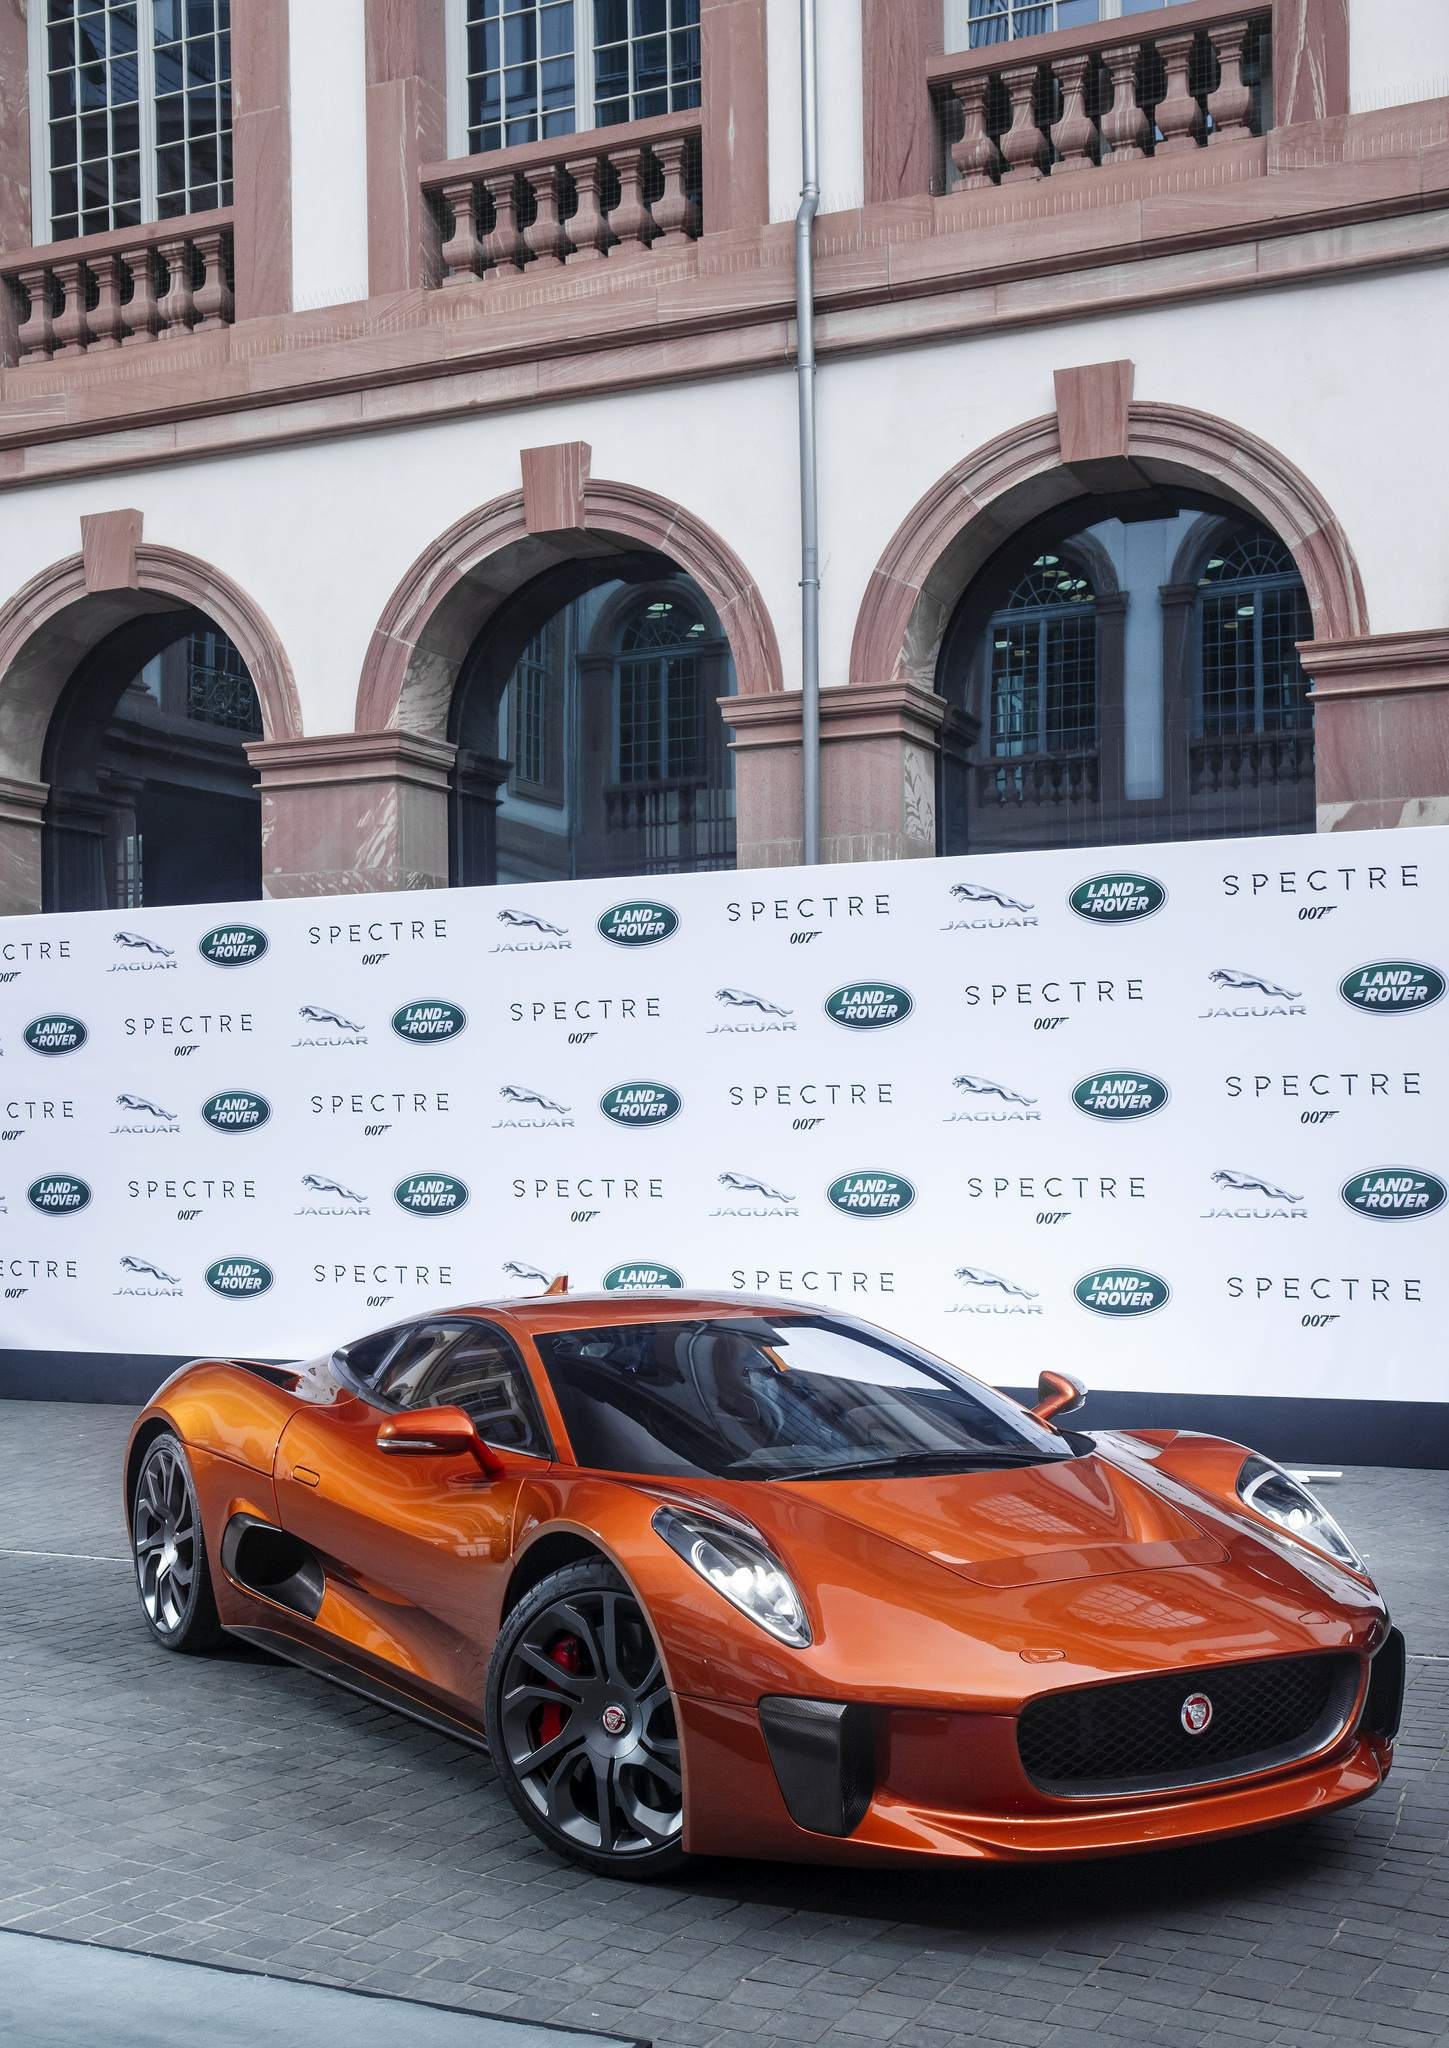 spectre car4 Jaguar Land Rover Latest Bond Cars